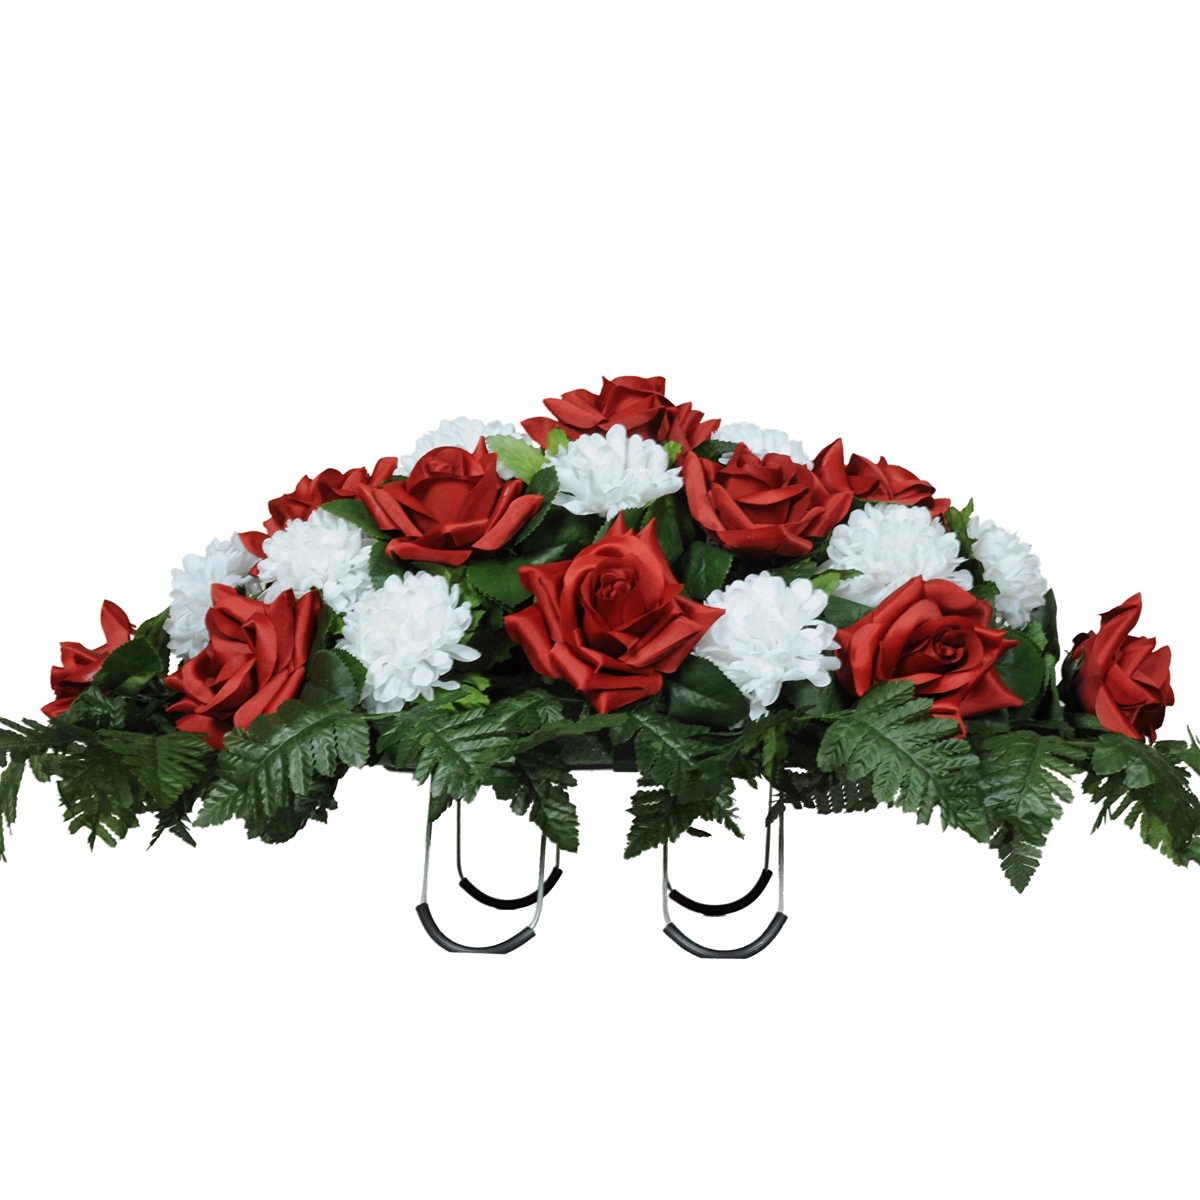 Cheap easy flowers find easy flowers deals on line at alibaba get quotations sympathy silks artificial cemetery flowers saddle arrangement red roses white carnations silk fake izmirmasajfo